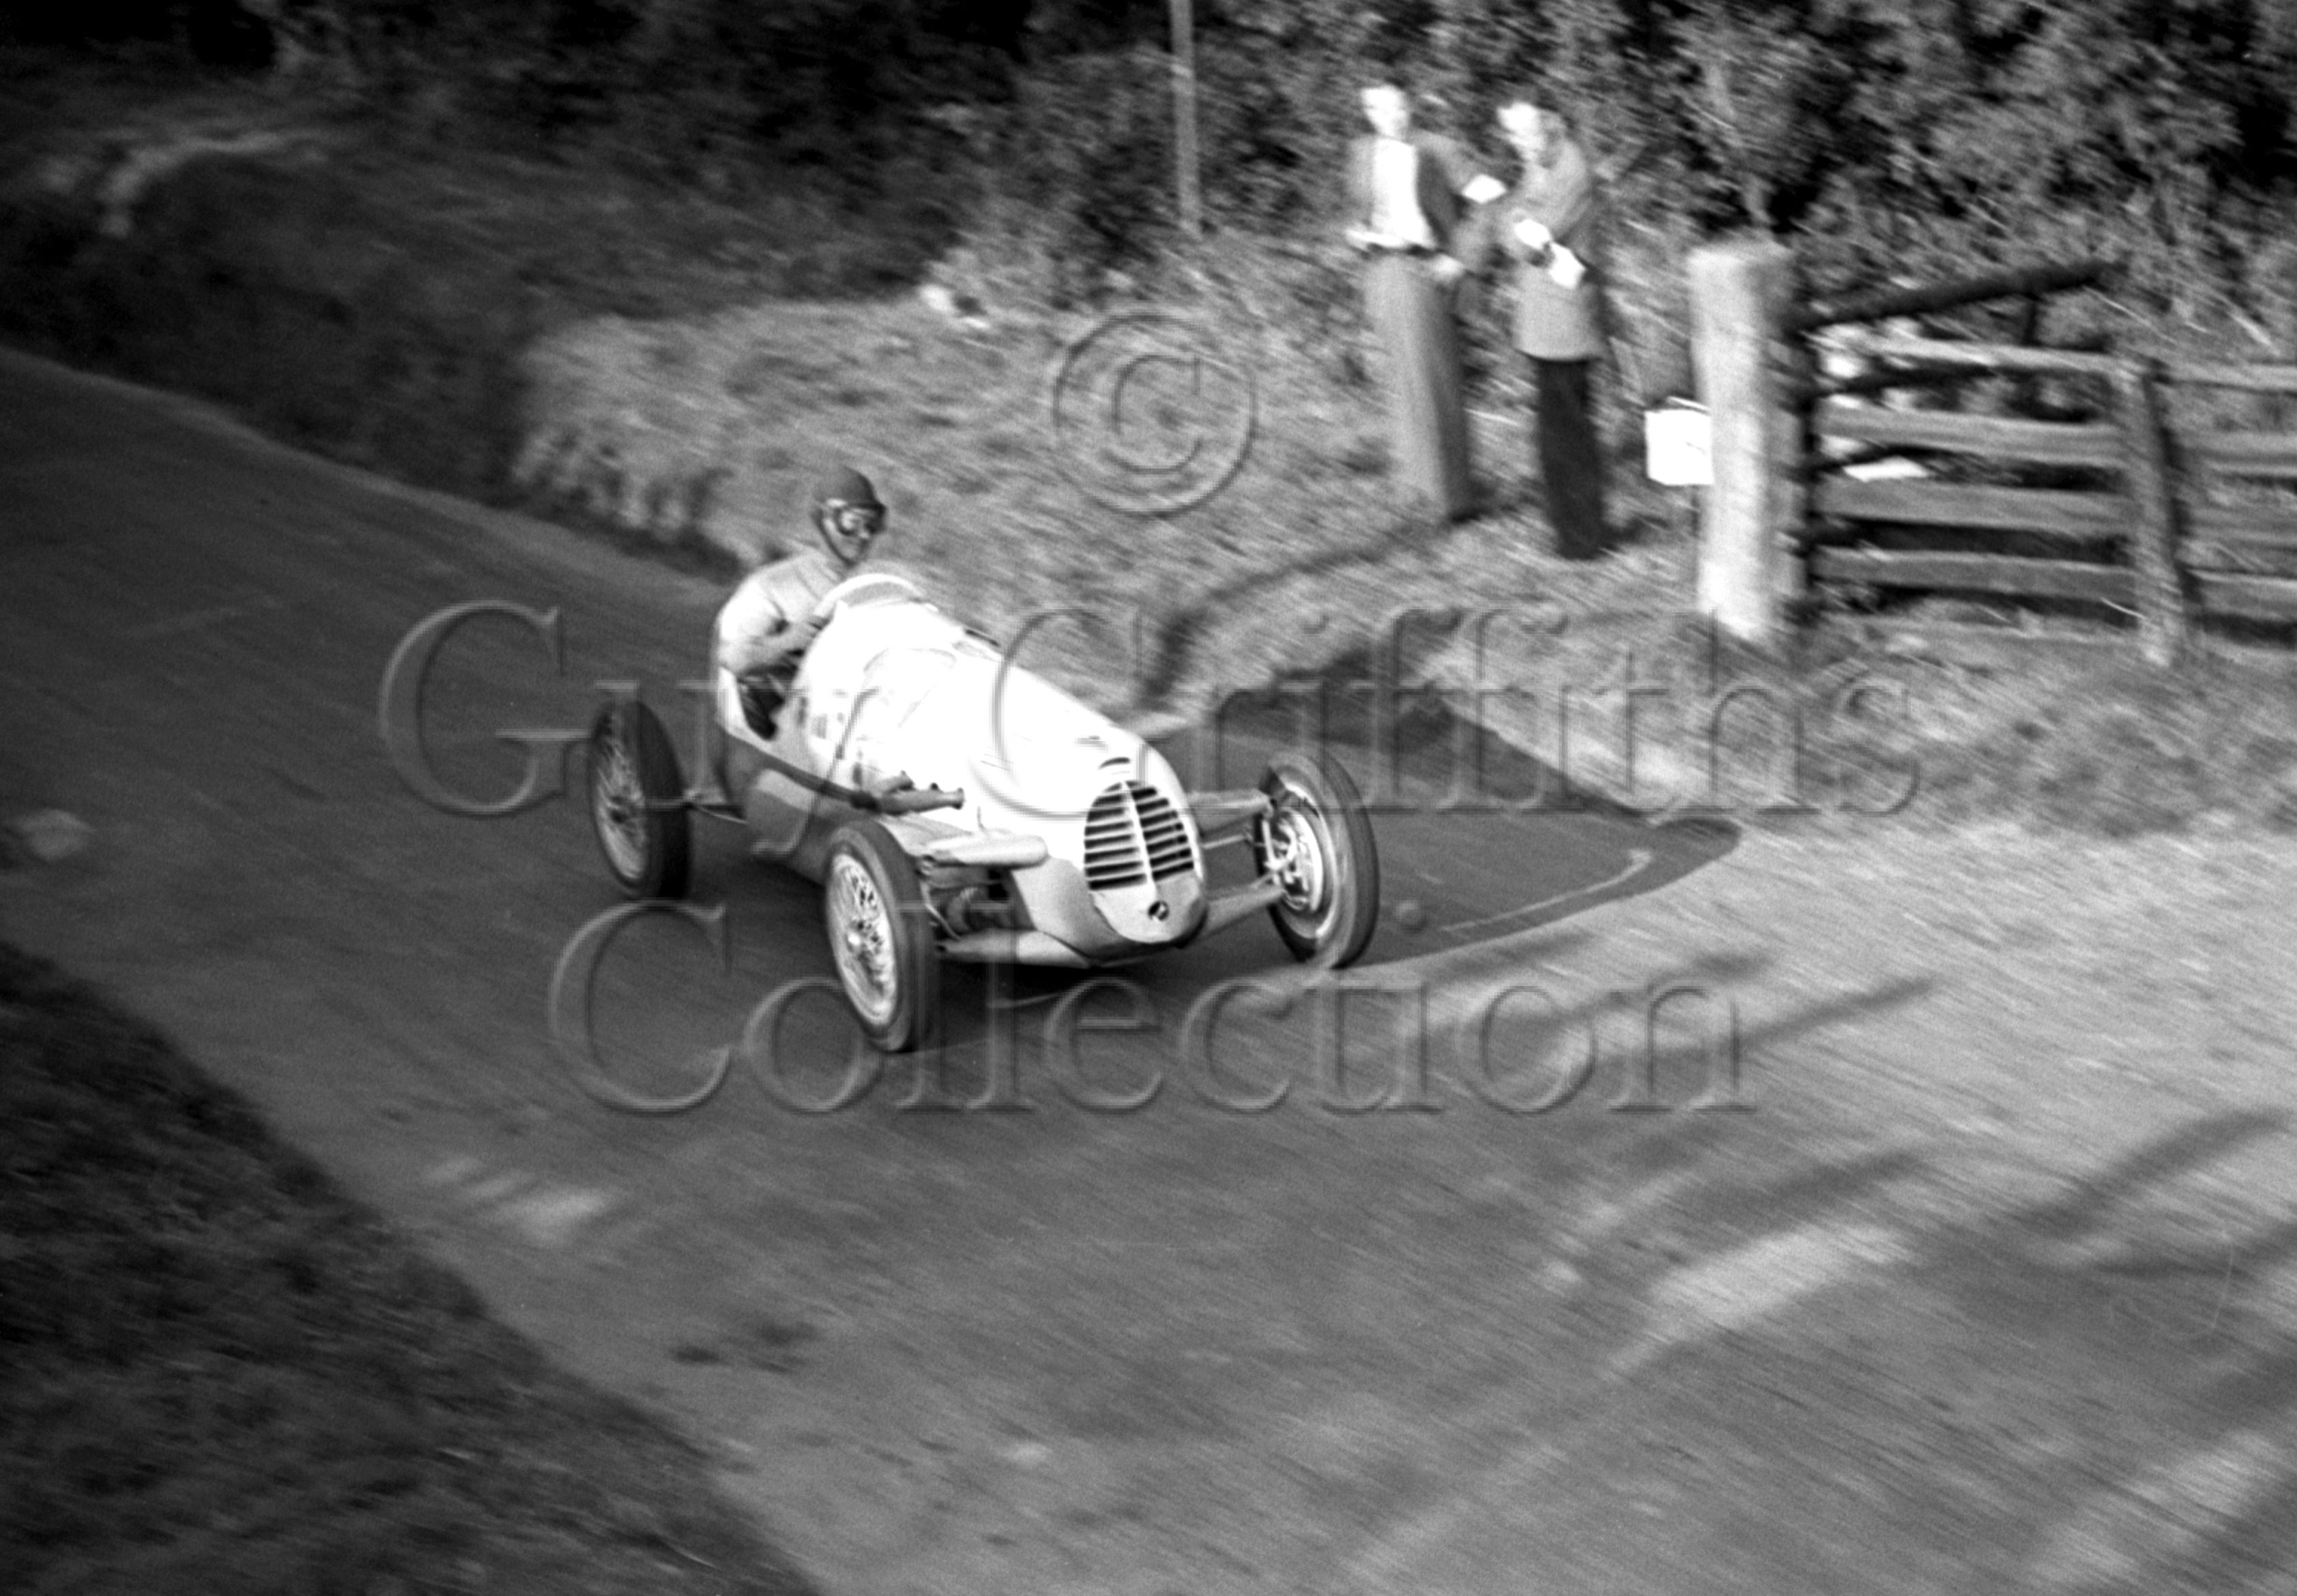 8-462–Z-Arkus-Duntov–Cisitalia–Shelsley-Walsh–25-09-1948.jpg - The Guy Griffiths Collection